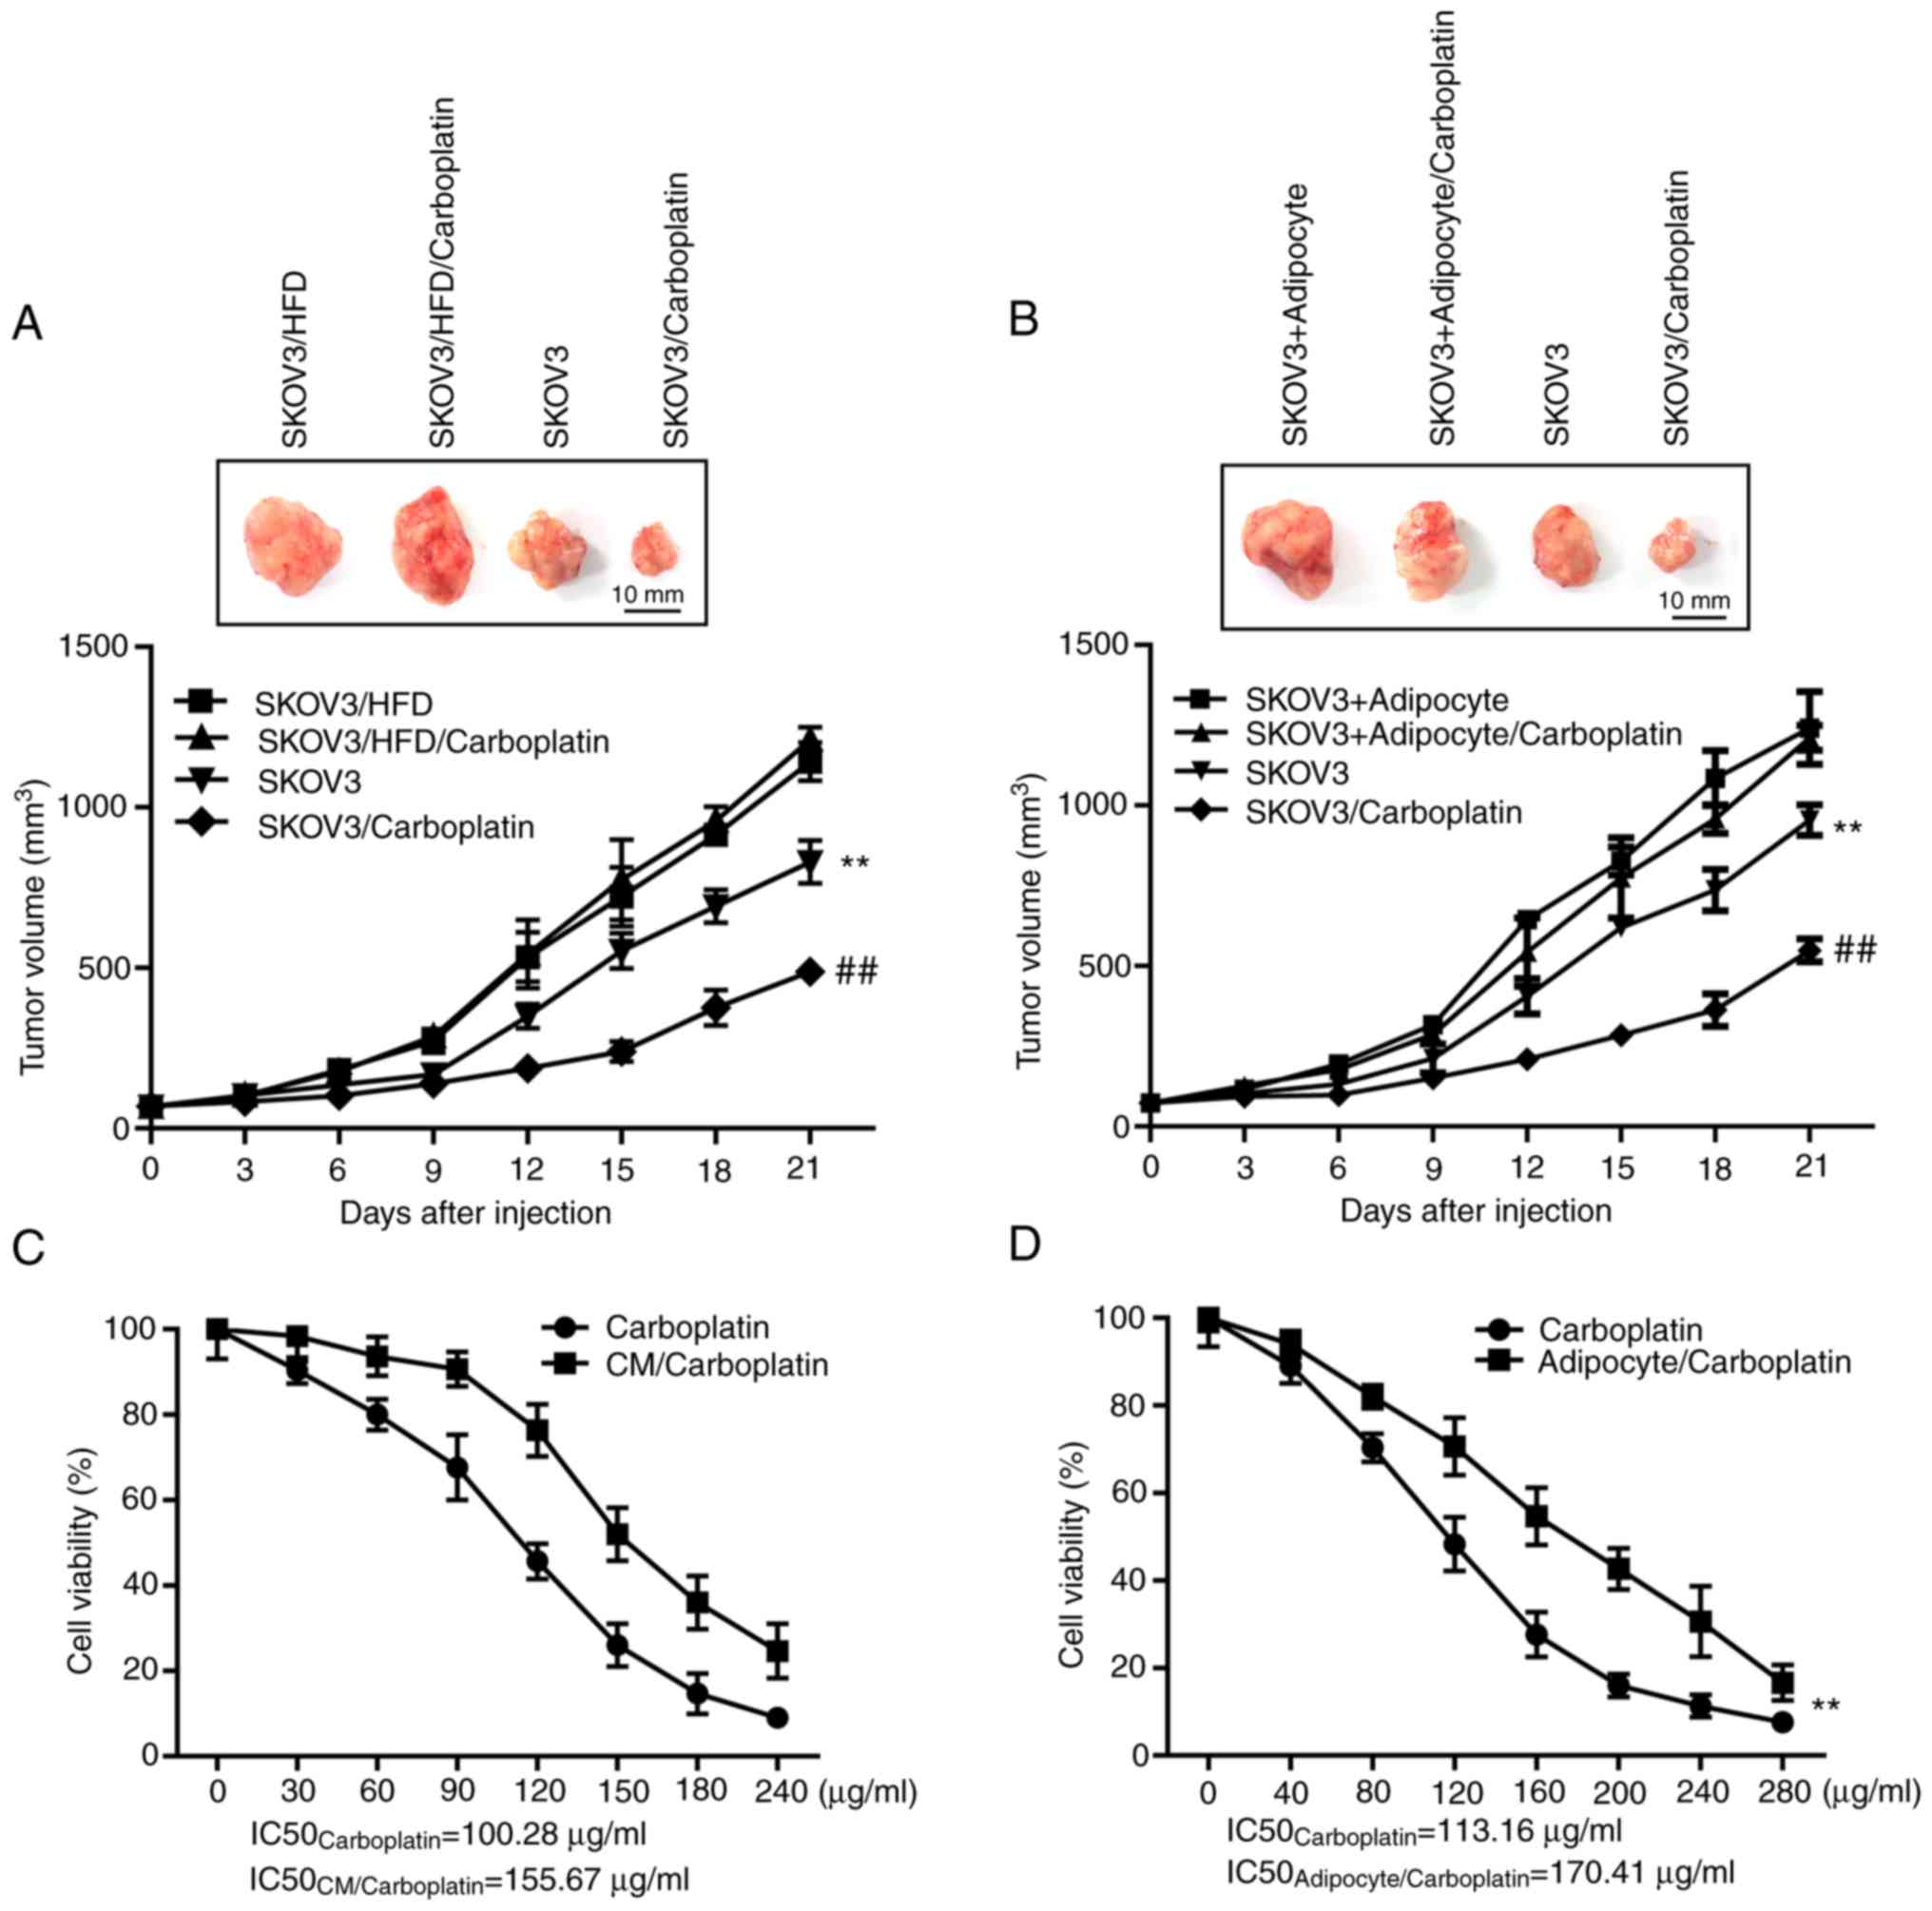 Adipocytes Induce The Resistance Of Ovarian Cancer To Carboplatin Through Angptl4